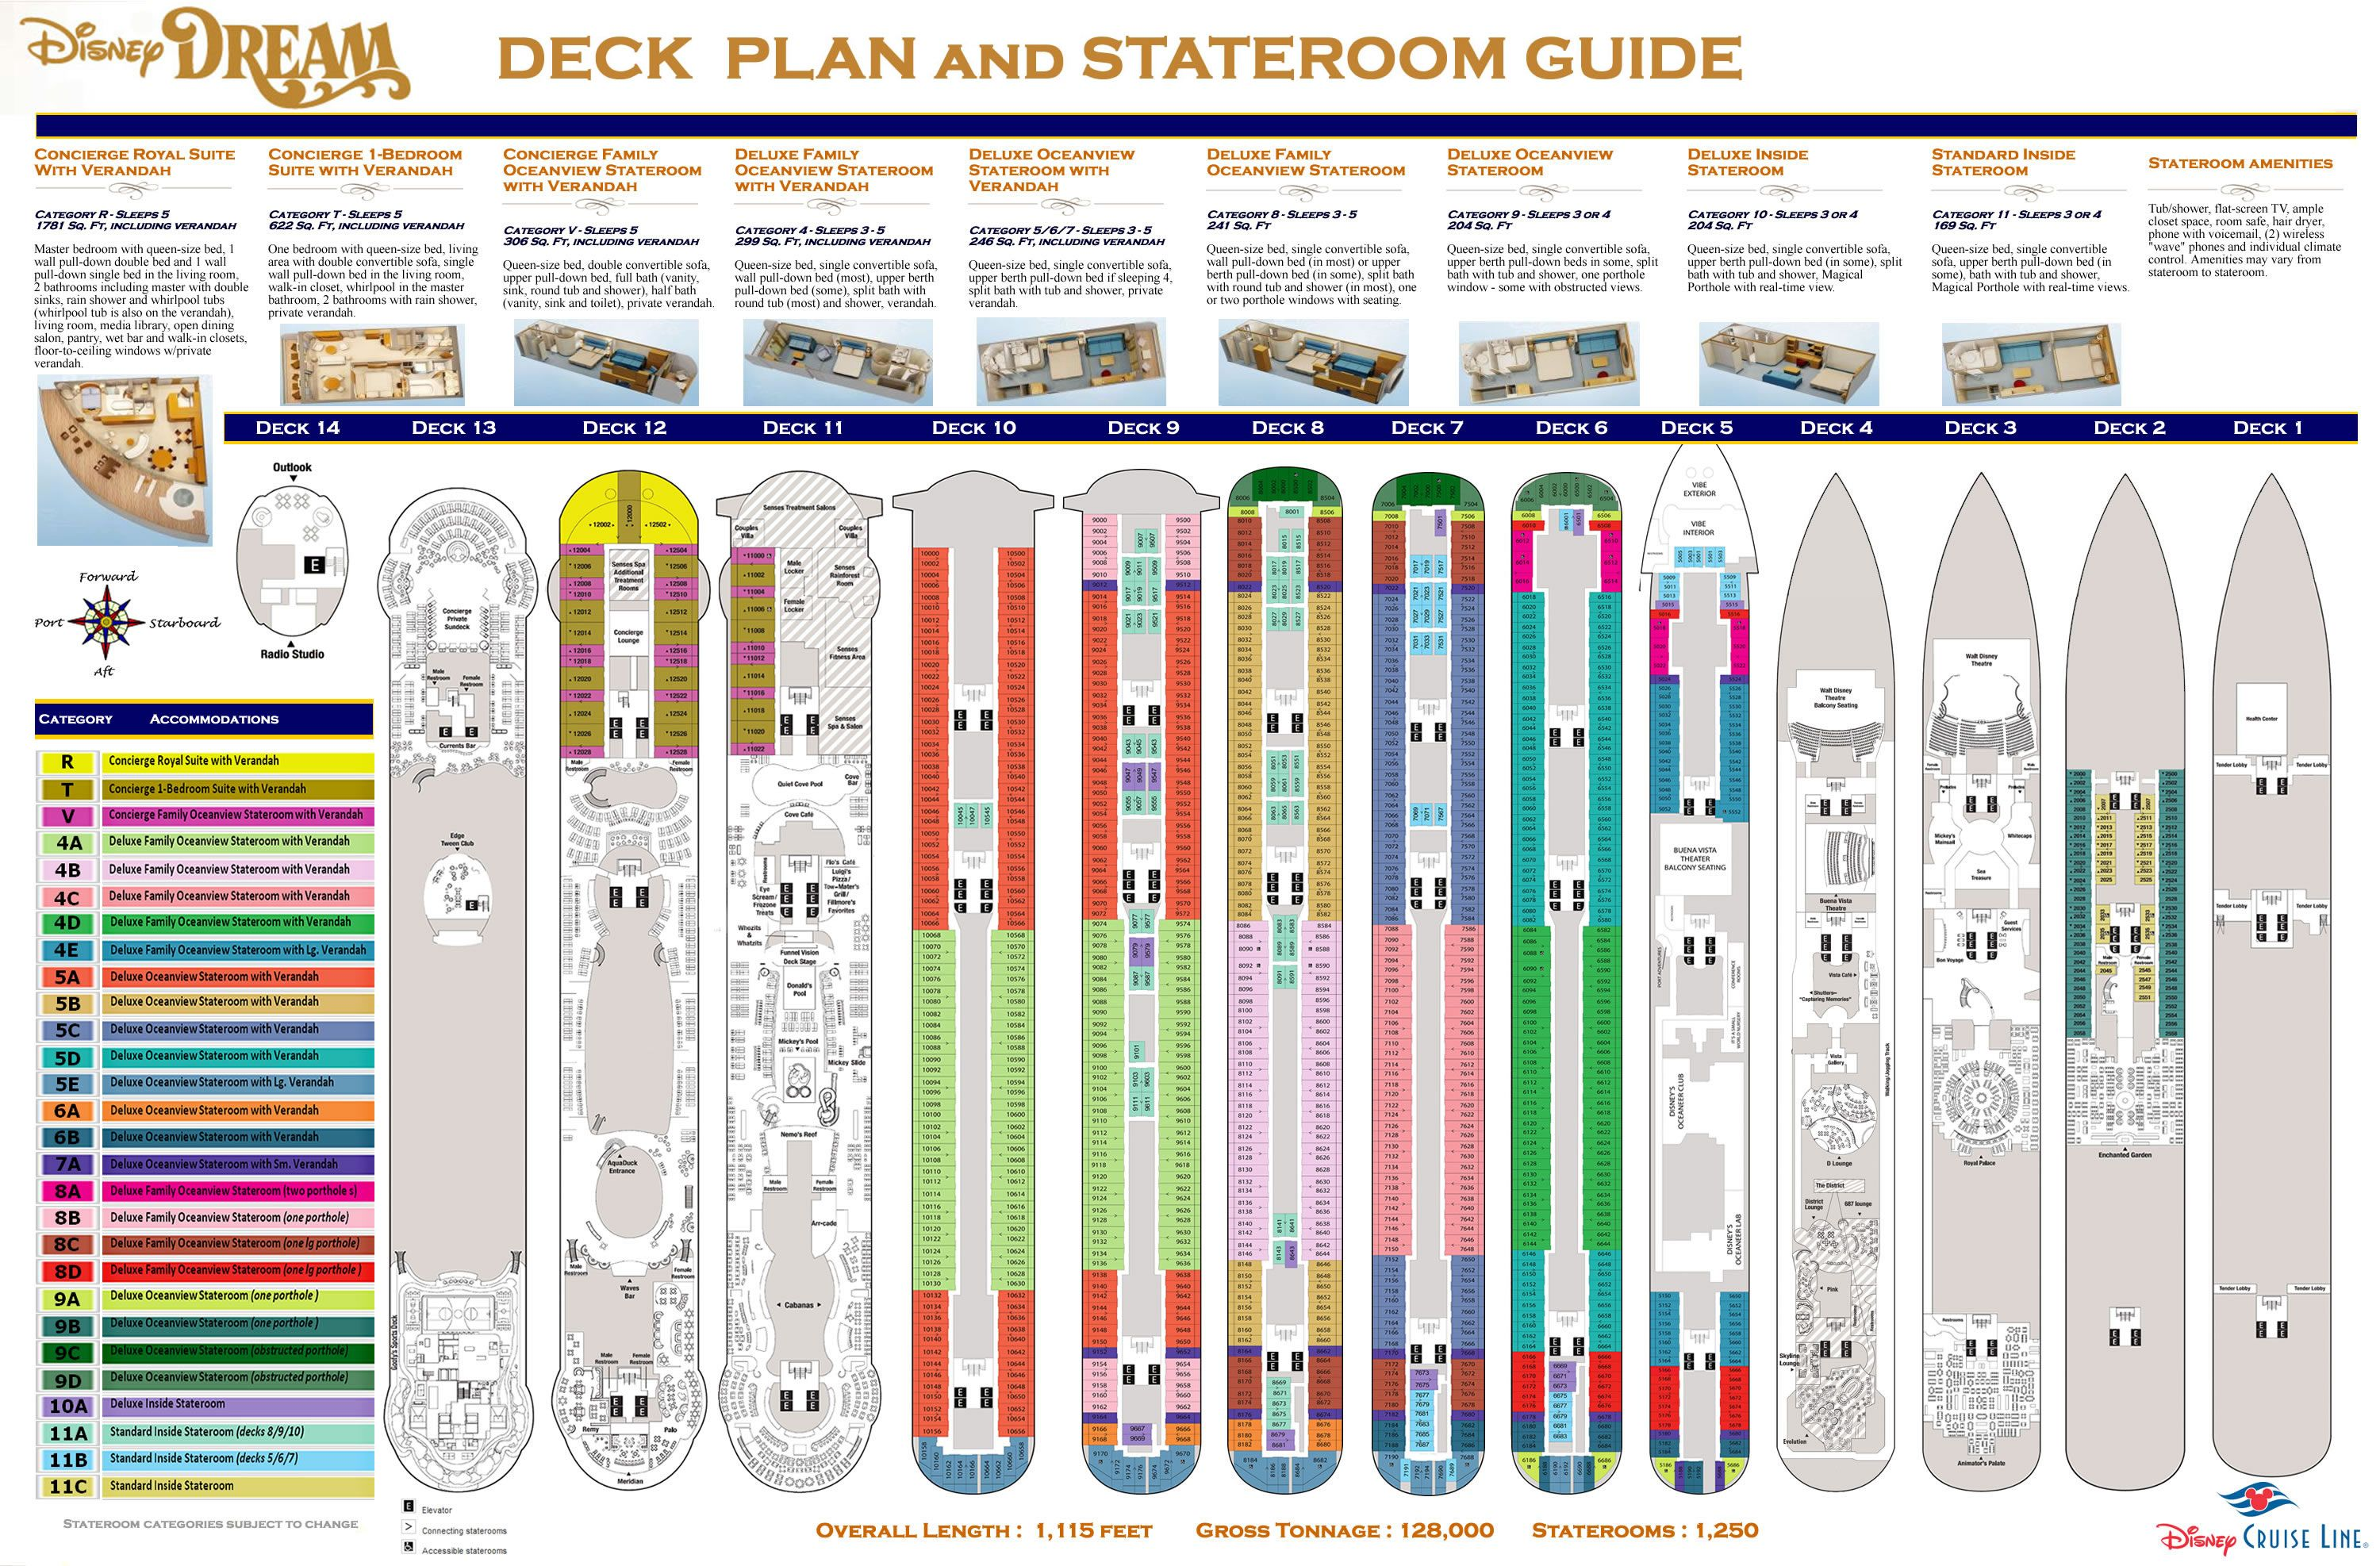 Disney dream deck 9 floor plan carpet vidalondon fddeffeb56a6da03823985f32e83d032 similiar disney wonder deck 6 floor plan keywords on disney dream stateroom floor plan baanklon Choice Image